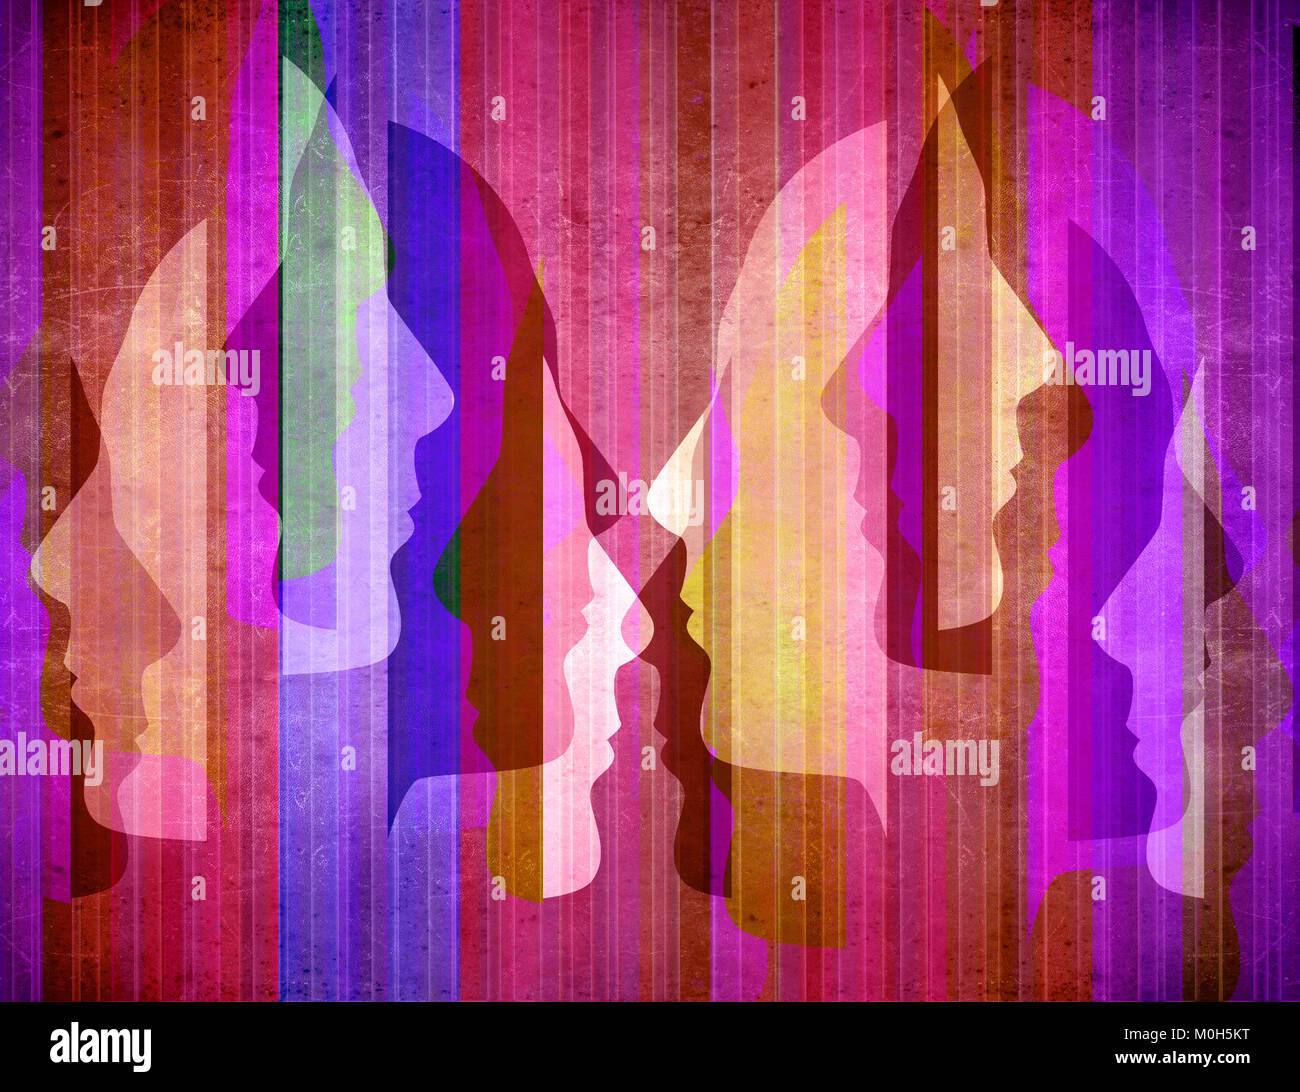 colored abstact background with human Silhouette Profiles - Stock Image